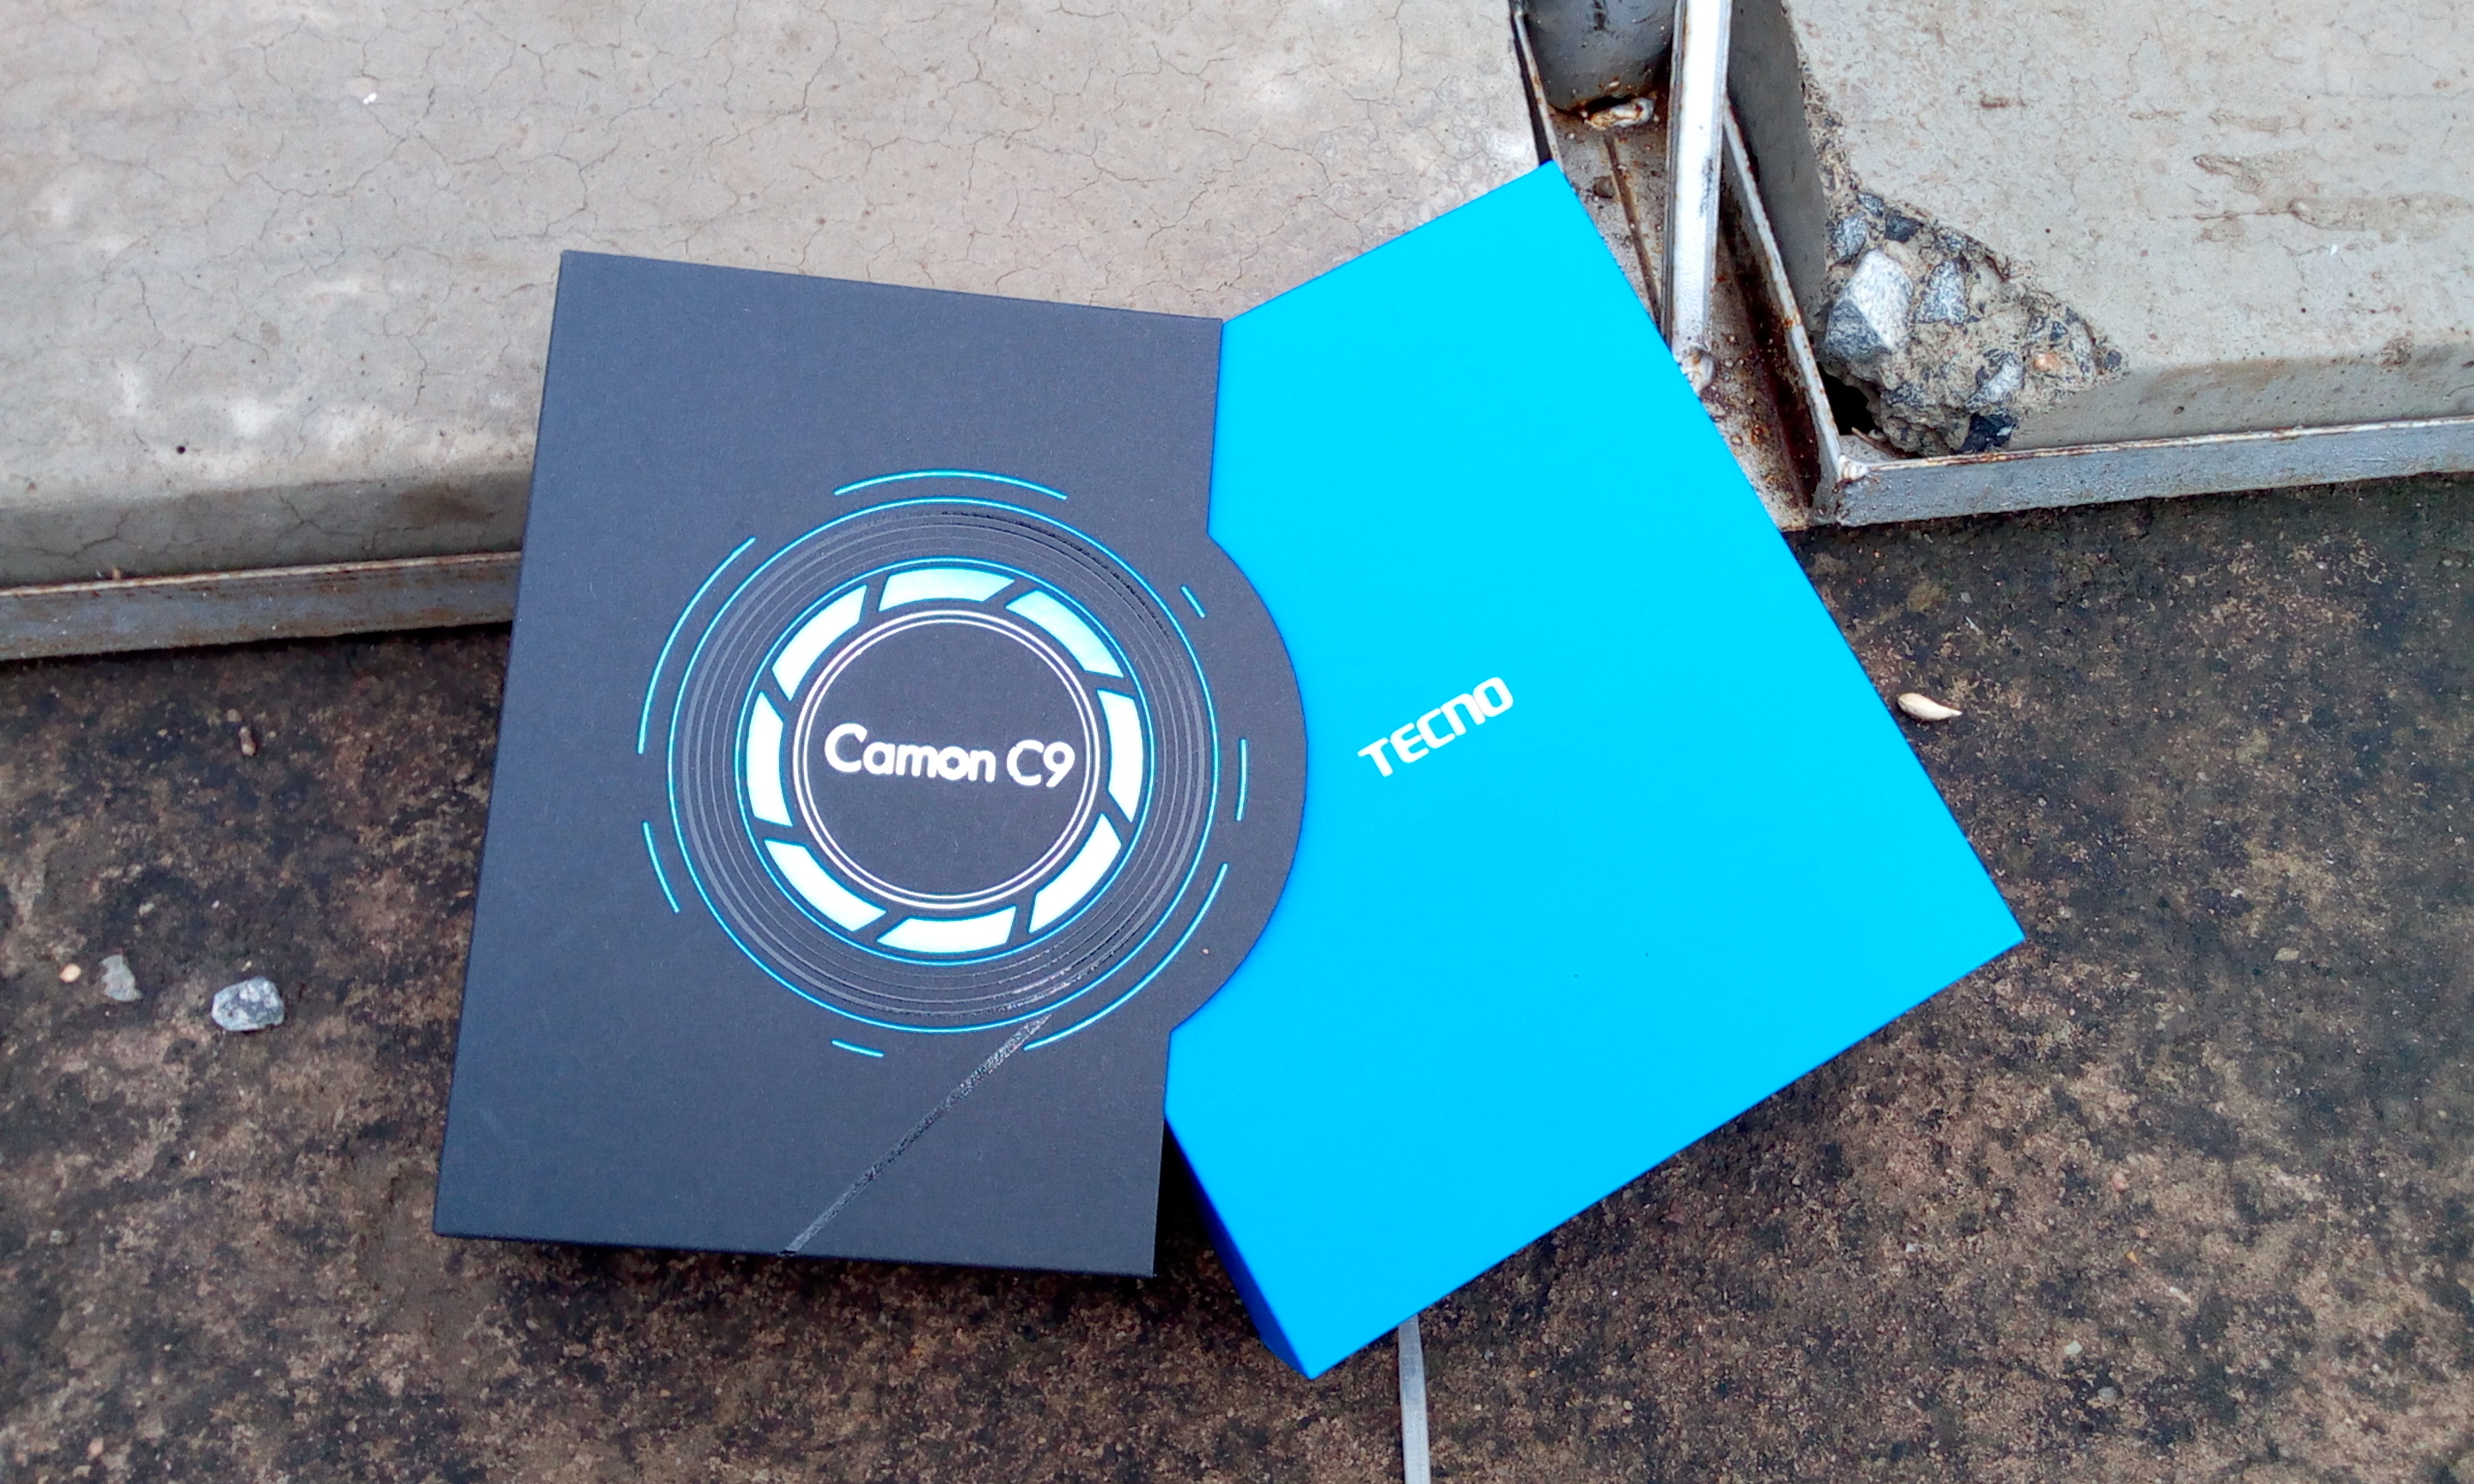 Tecno Camon C9 Unboxing and first impressions